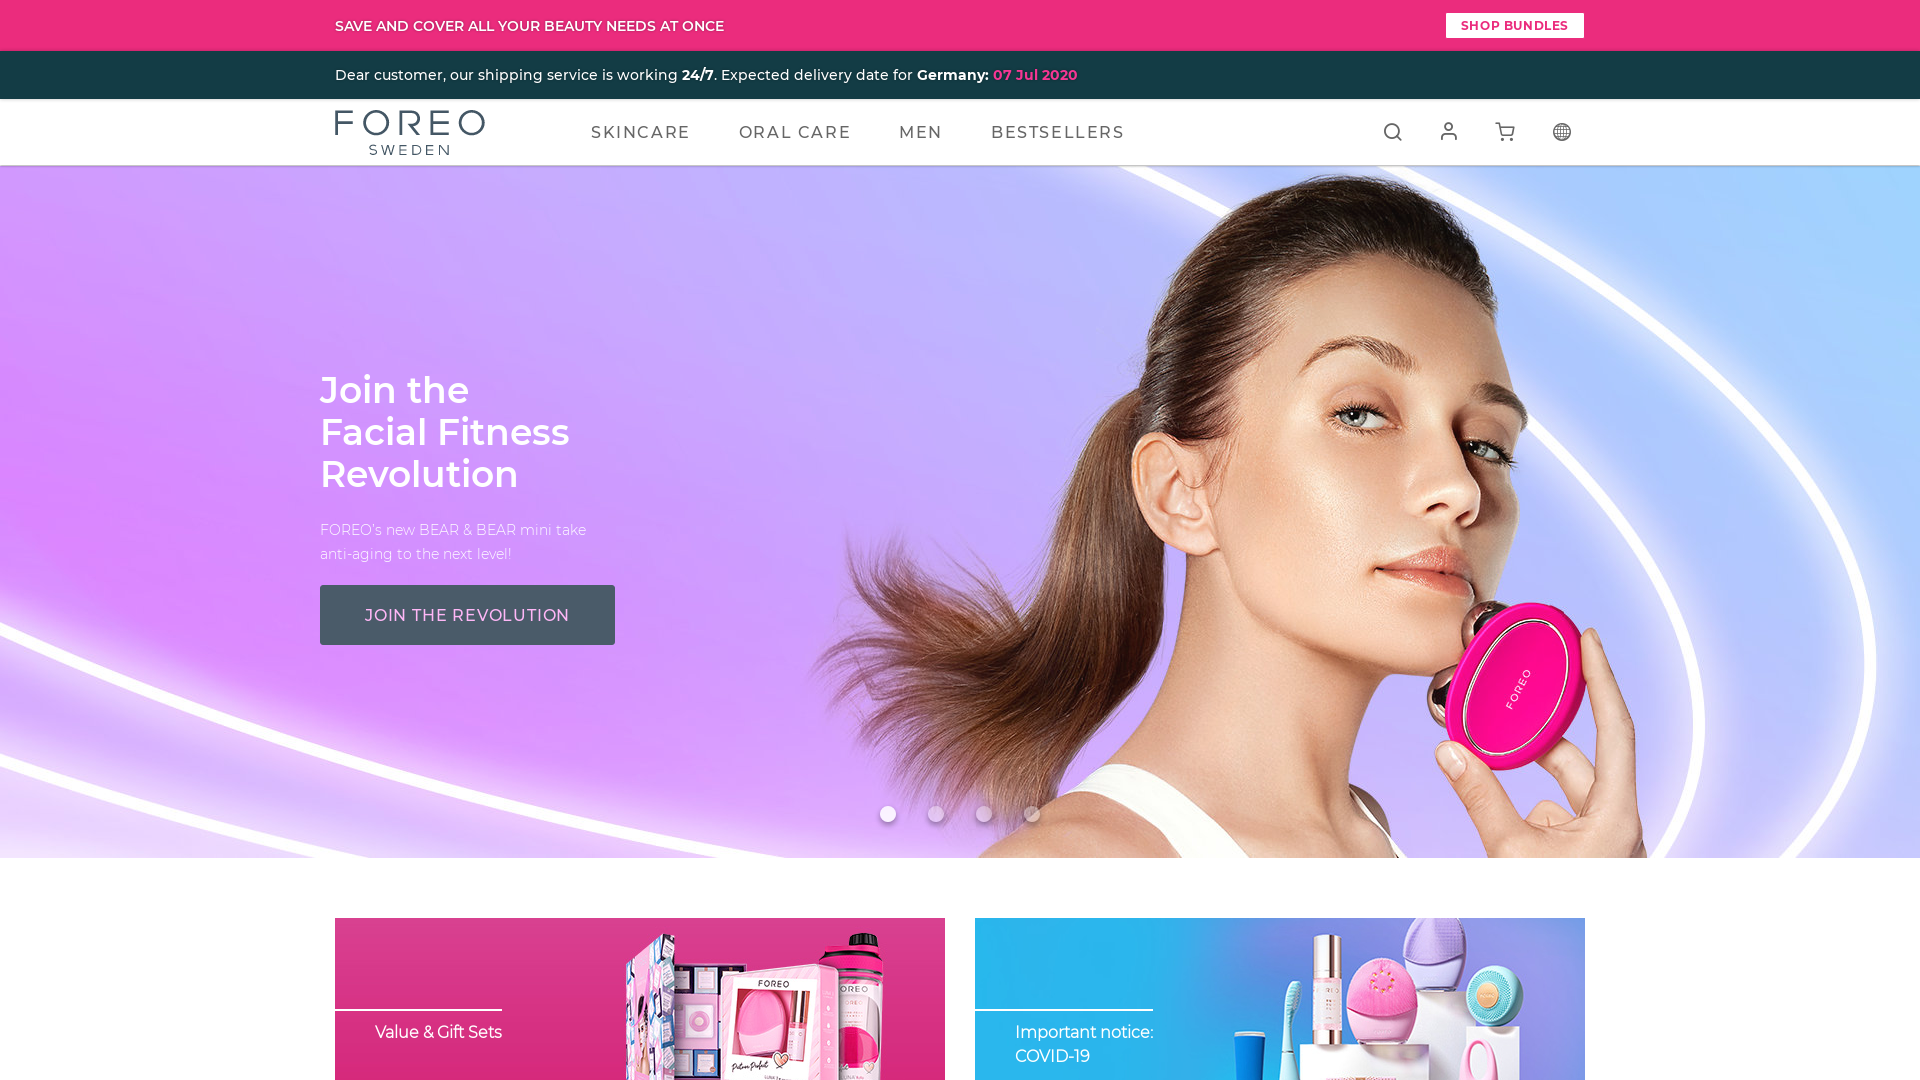 FOREO website